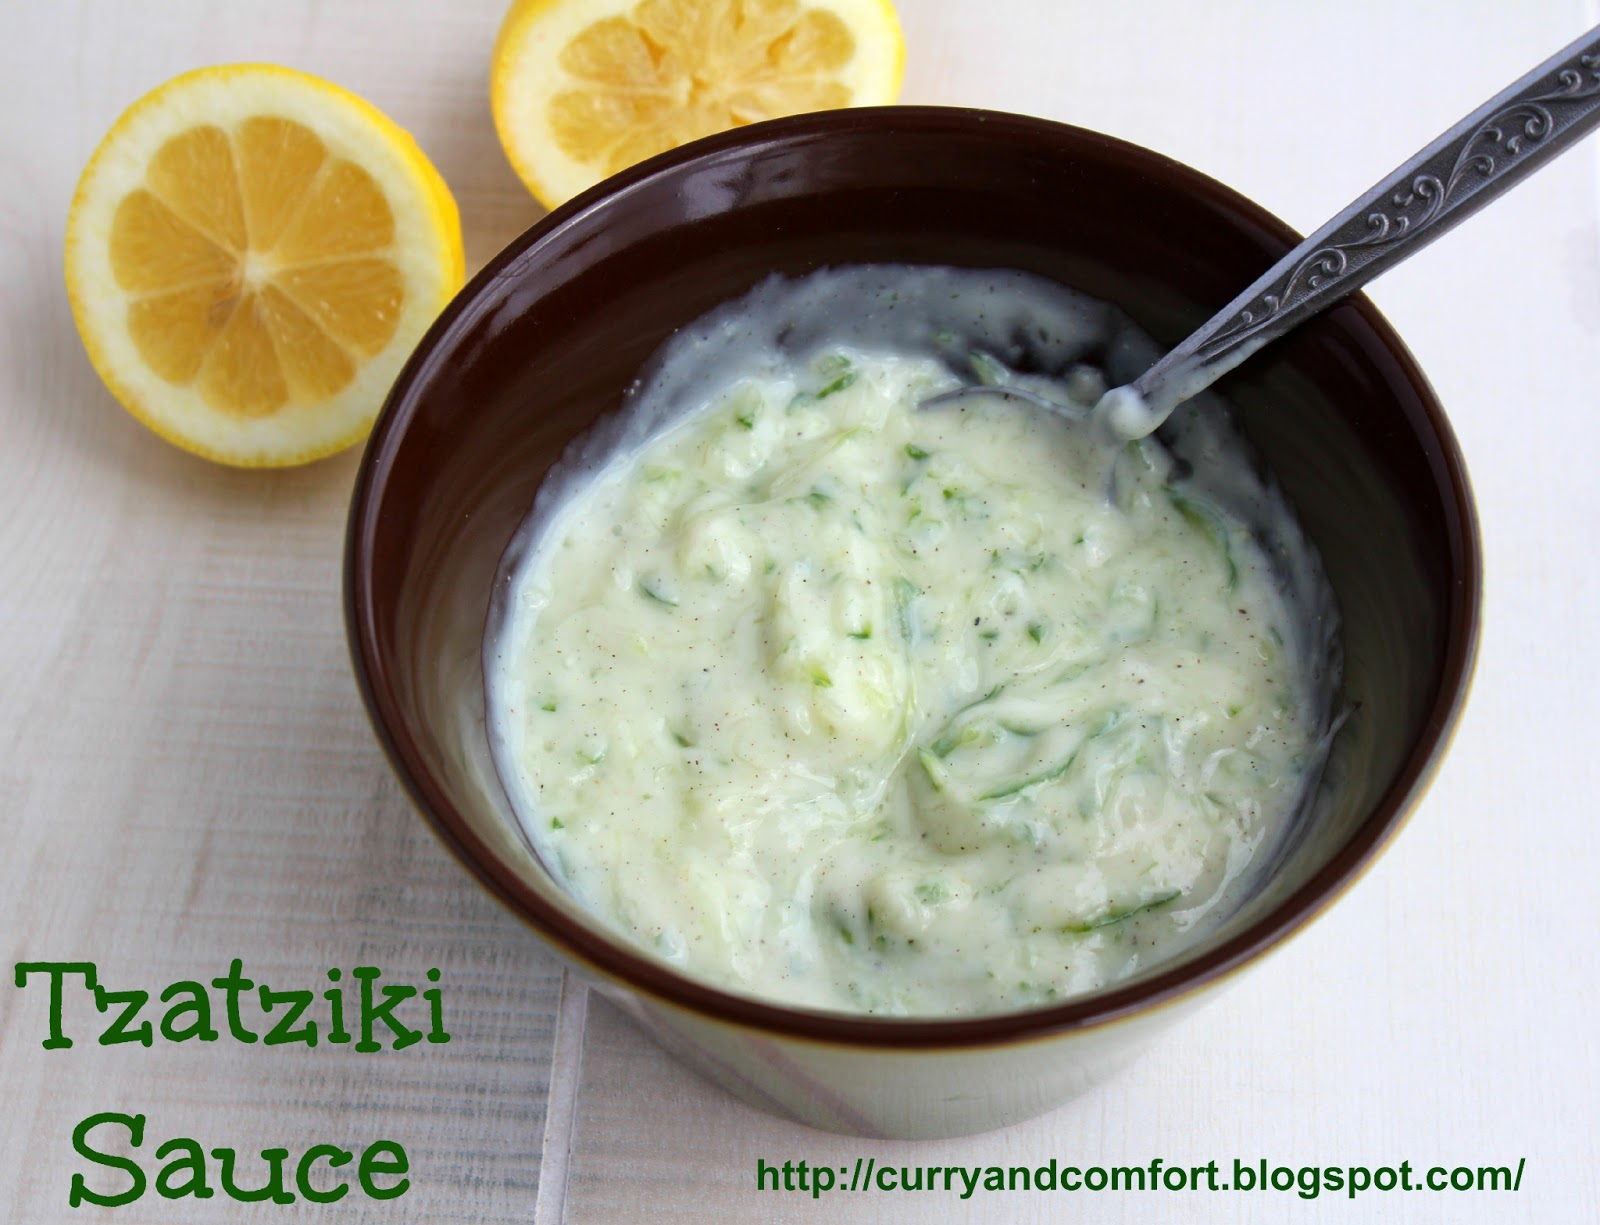 how to make tzatziki sauce without dill